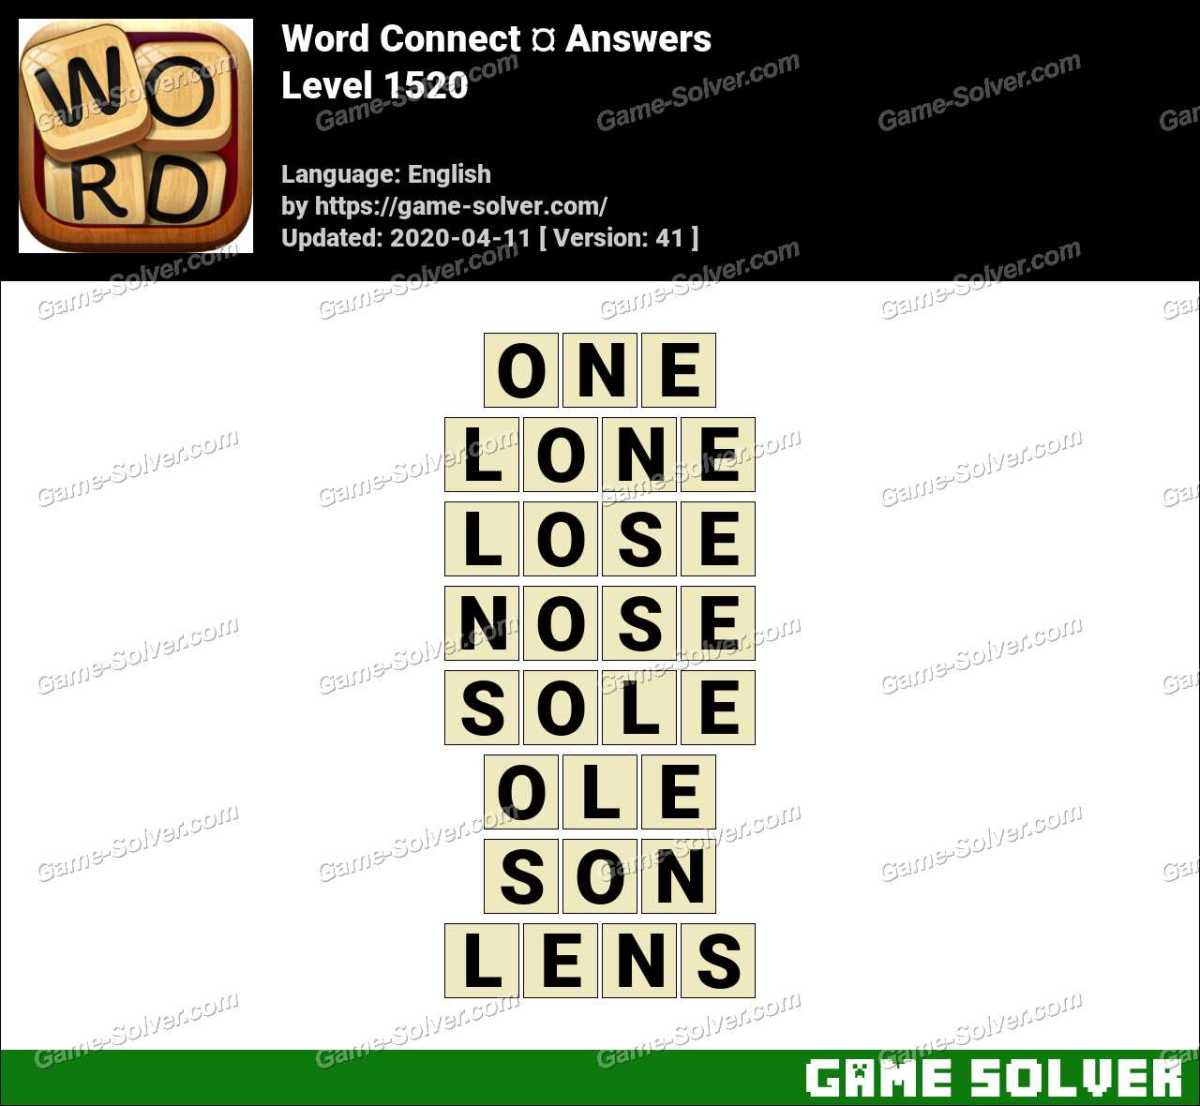 Word Connect Level 1520 Answers